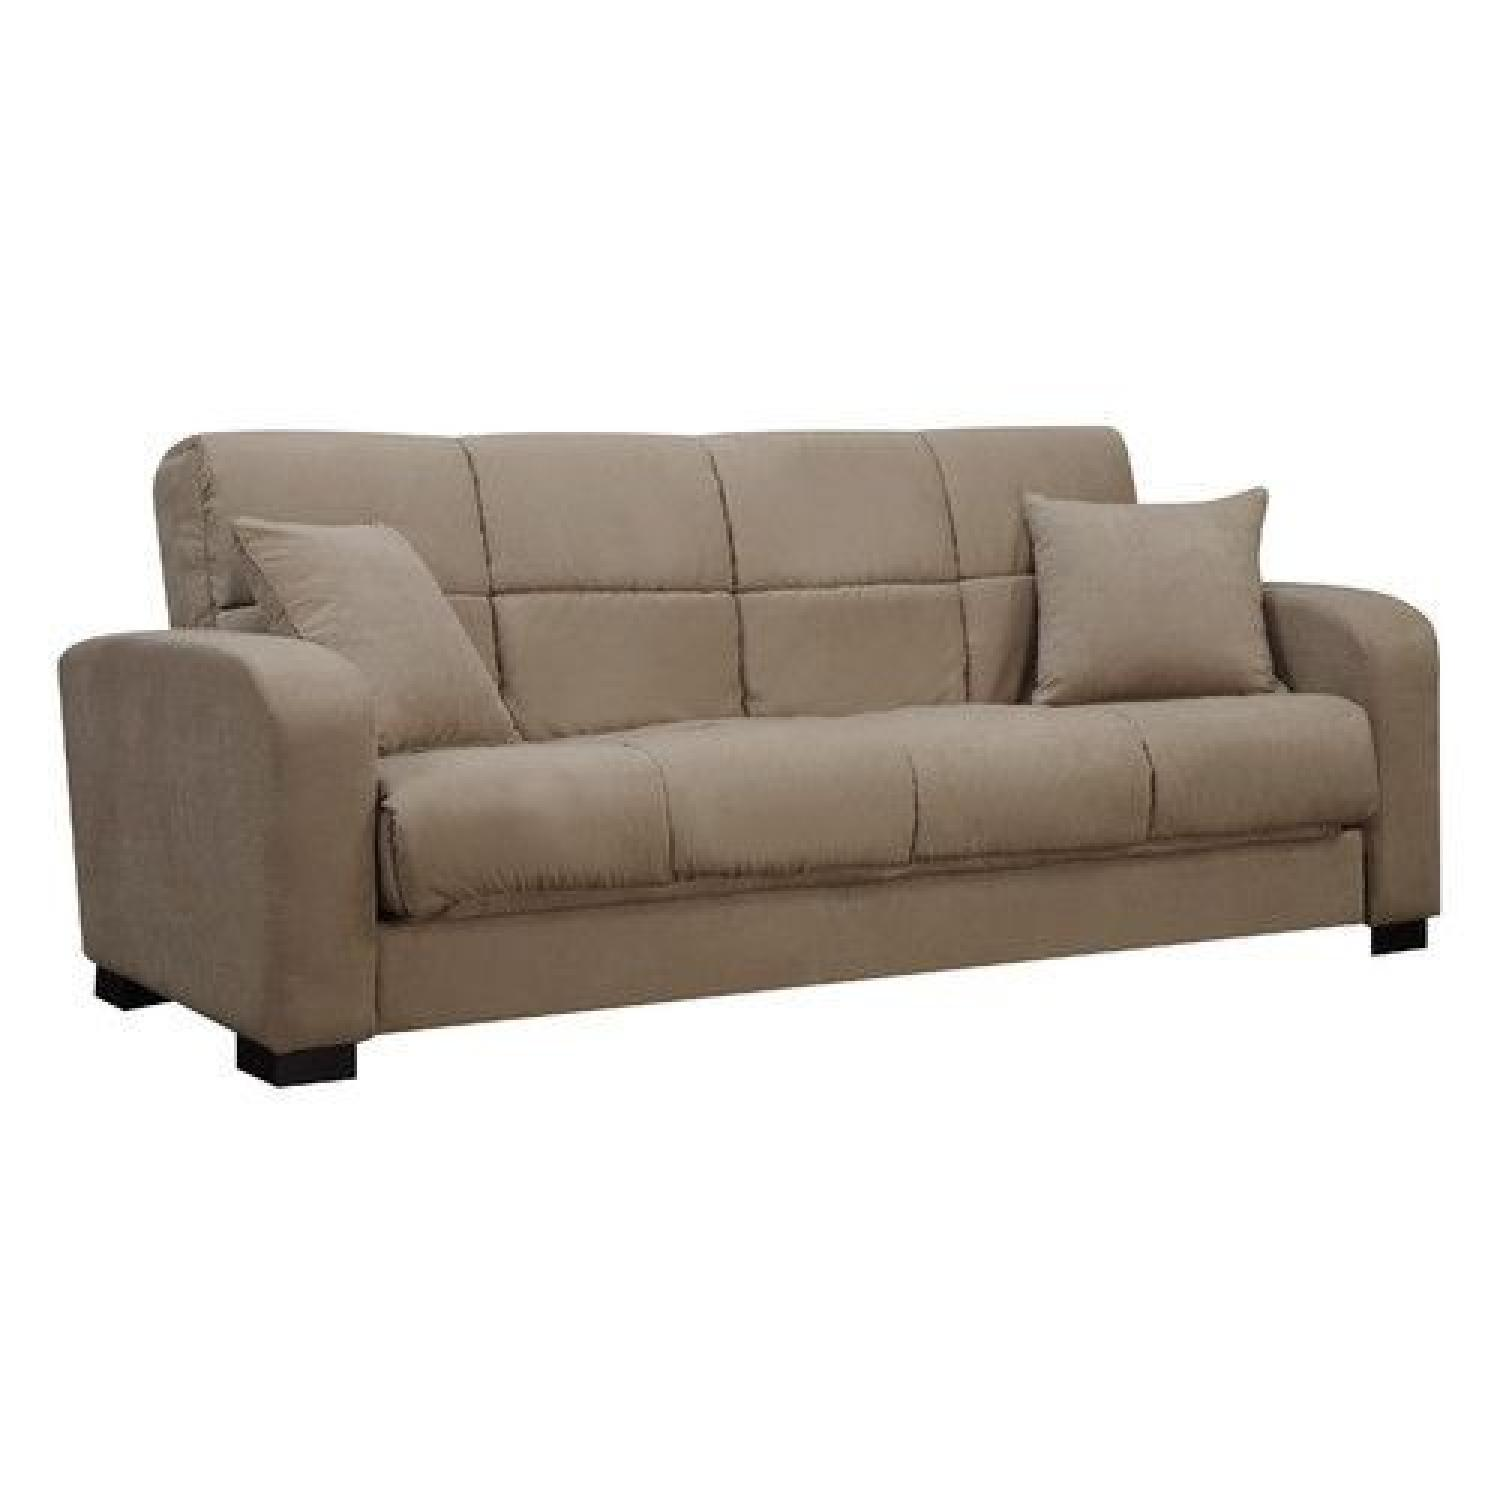 Handy Living Damen Microfiber Convert A Couch Aptdeco ~ Convert A Couch And Sofa Bed